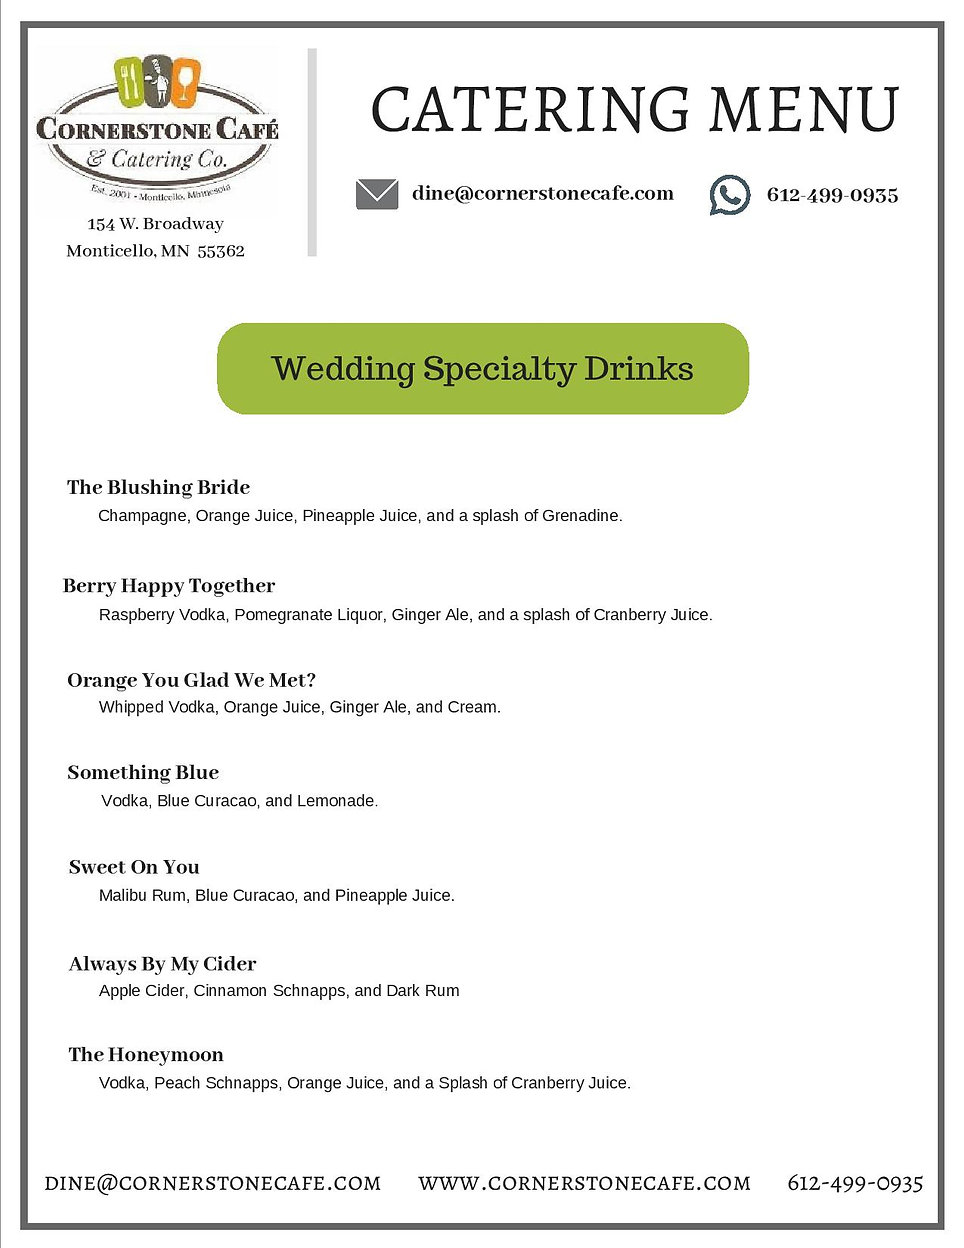 CATERING MENU-DRINK MENU-page-001.jpg